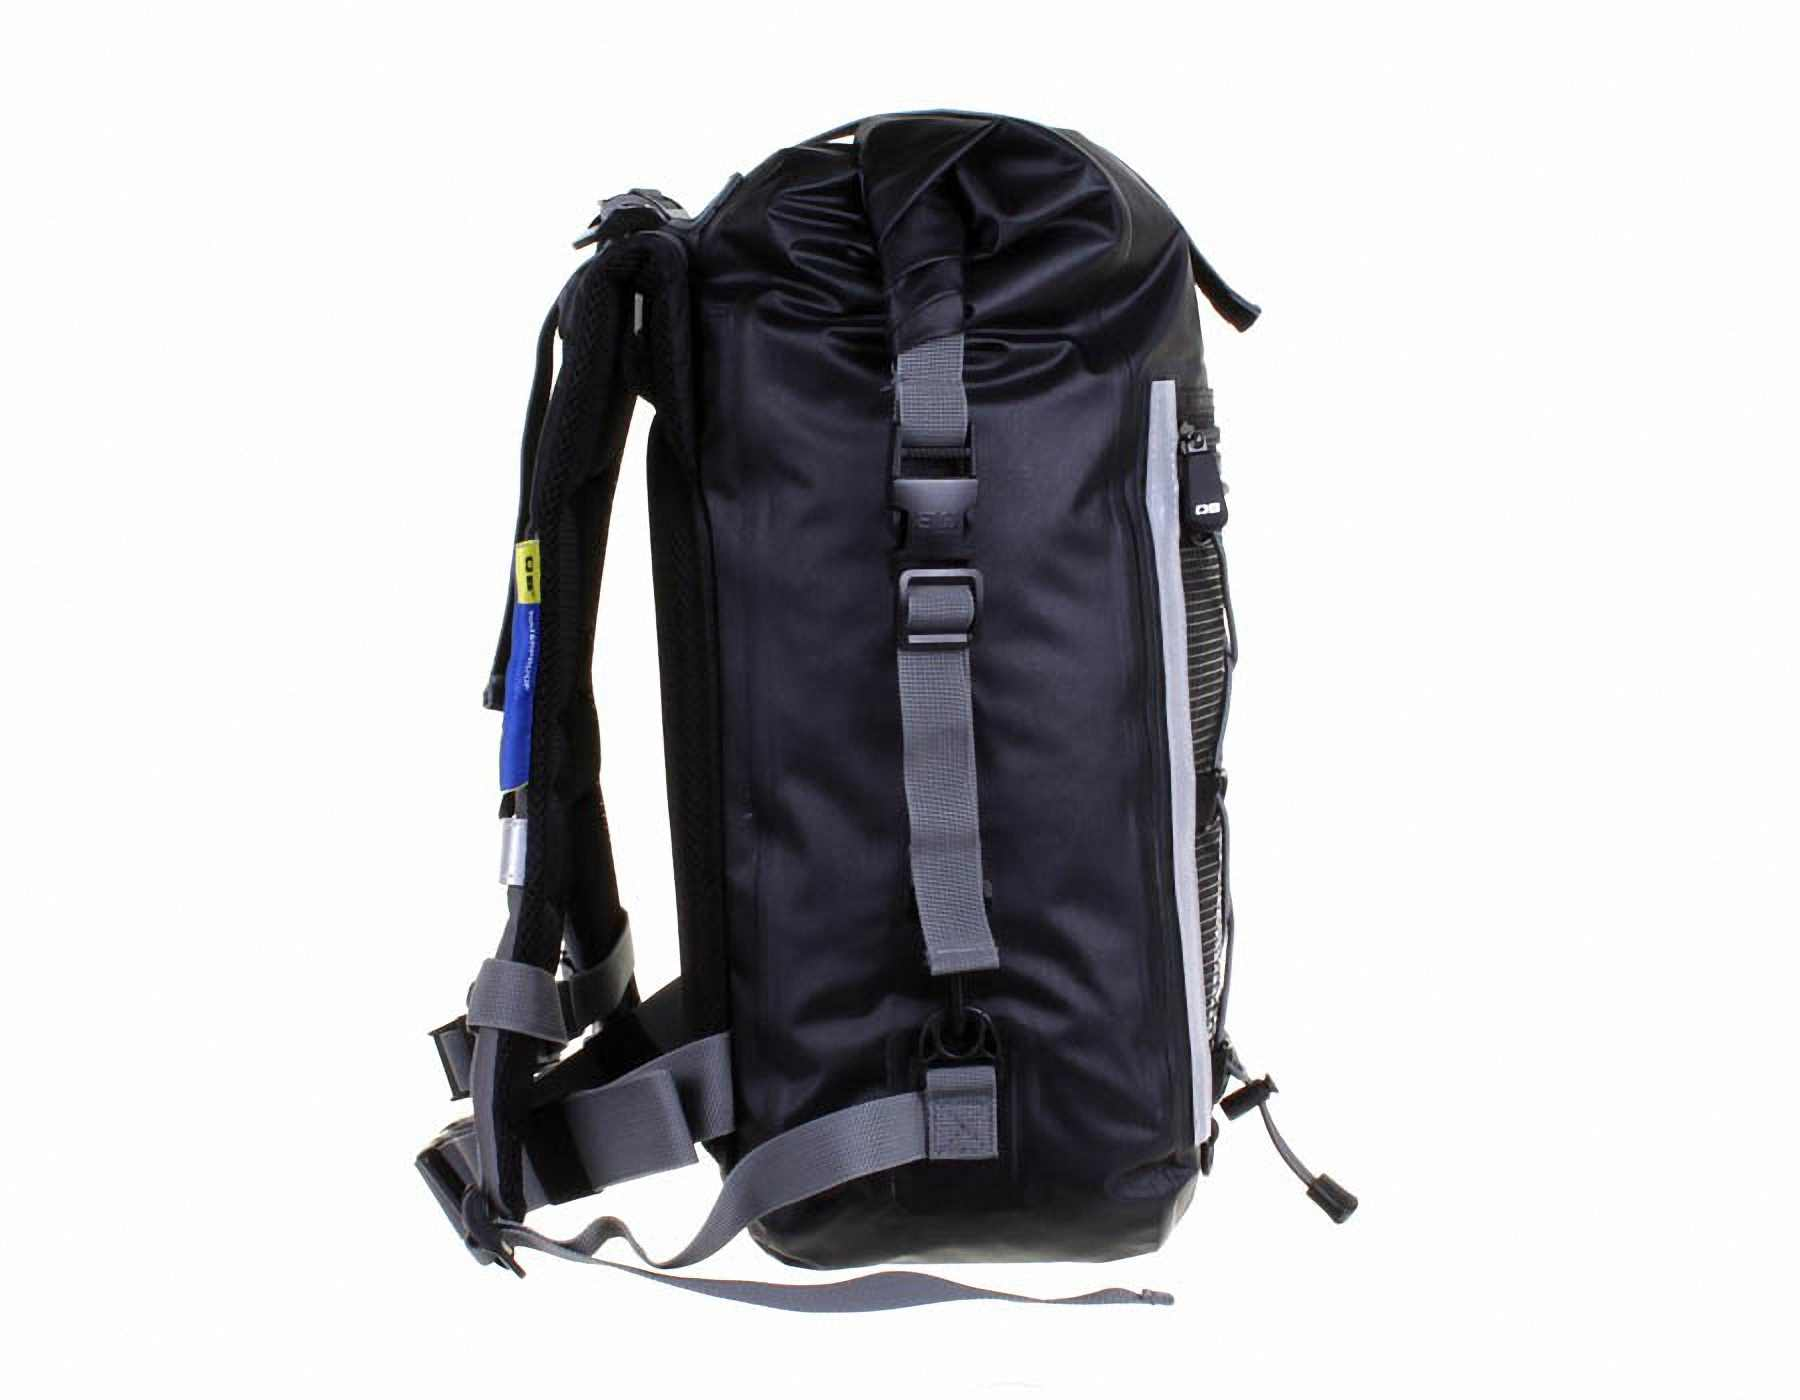 Водонепроницаемый рюкзак OverBoard OB1135BLK - Ultra-light Pro-Sports Waterproof Backpack - 20L. Фото 4